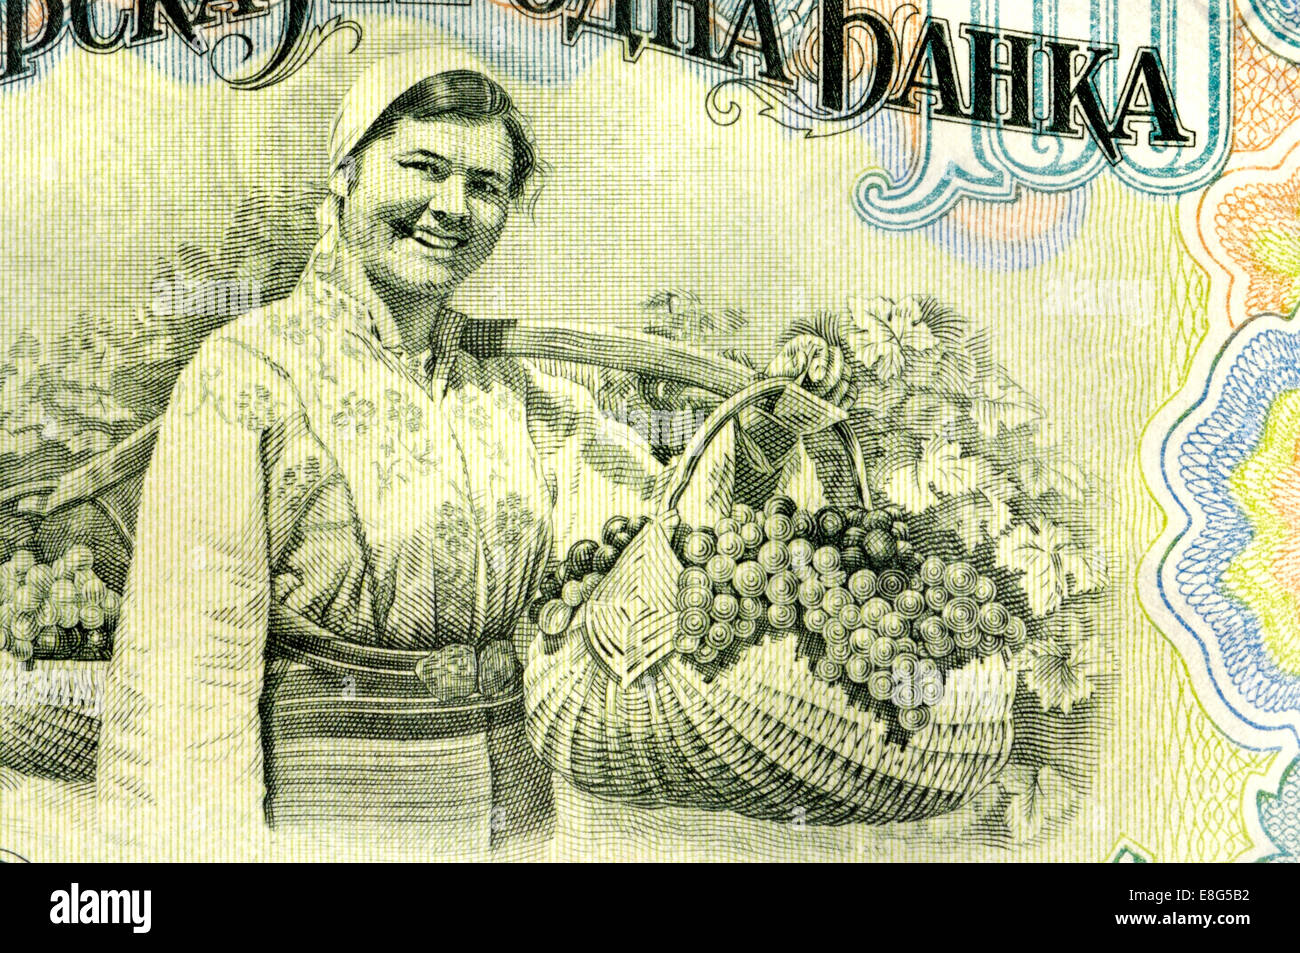 Detail from a 1950s Bulgarian 100 Lev banknote showing a woman with a basket full of grapes - Stock Image